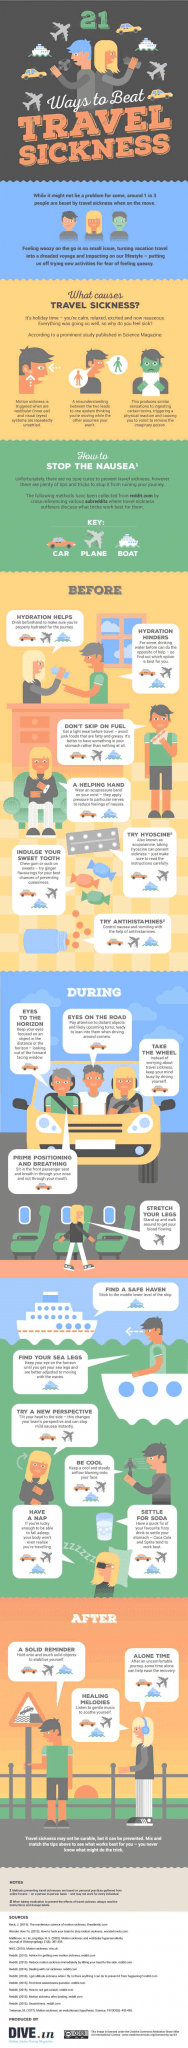 travel sickness prevention infographic